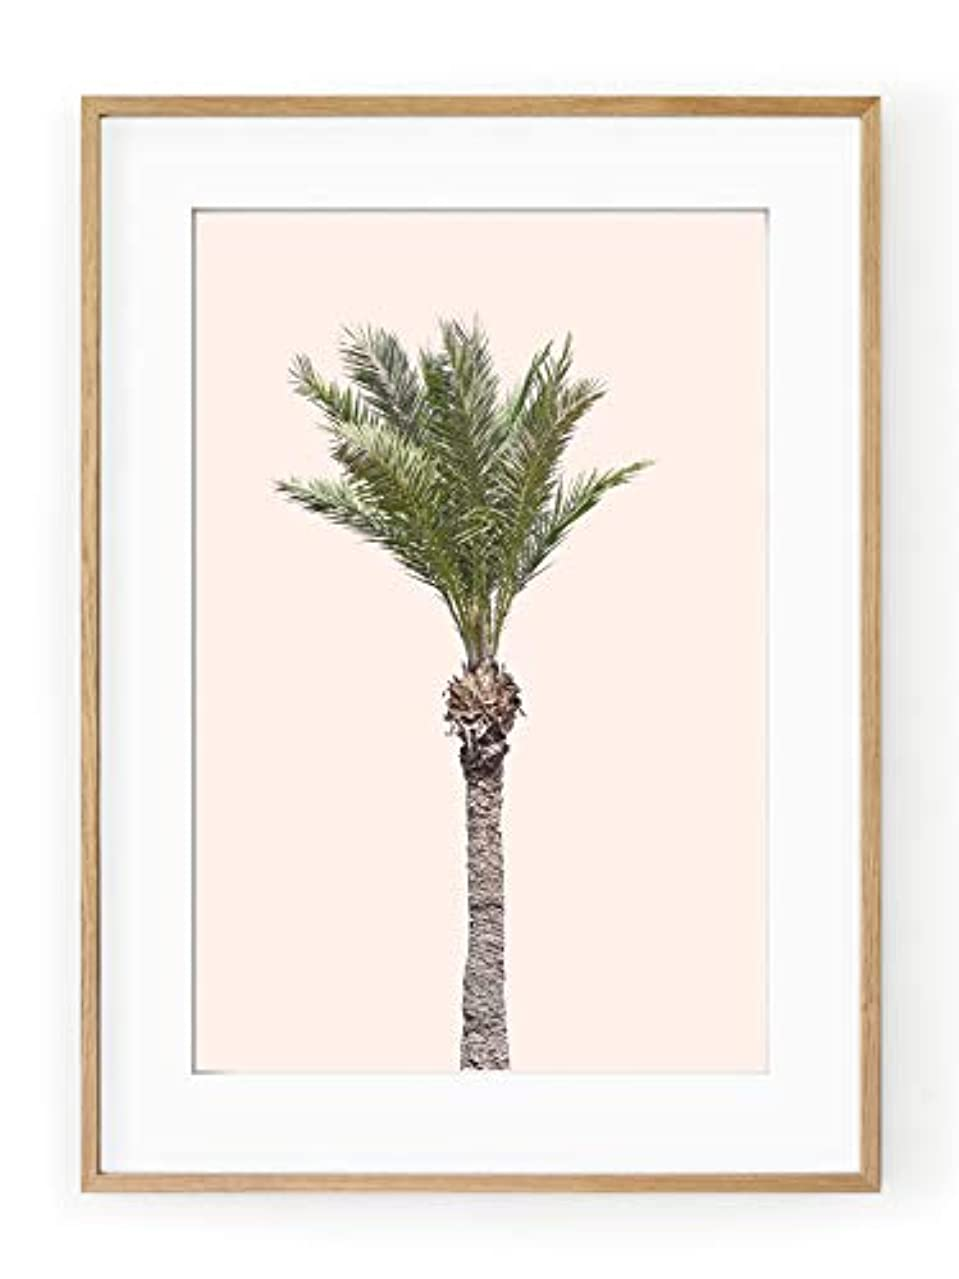 Palm Tree on Pink Background with White Lacquer Wooden Frame and Mount, Multicolored, 40x50